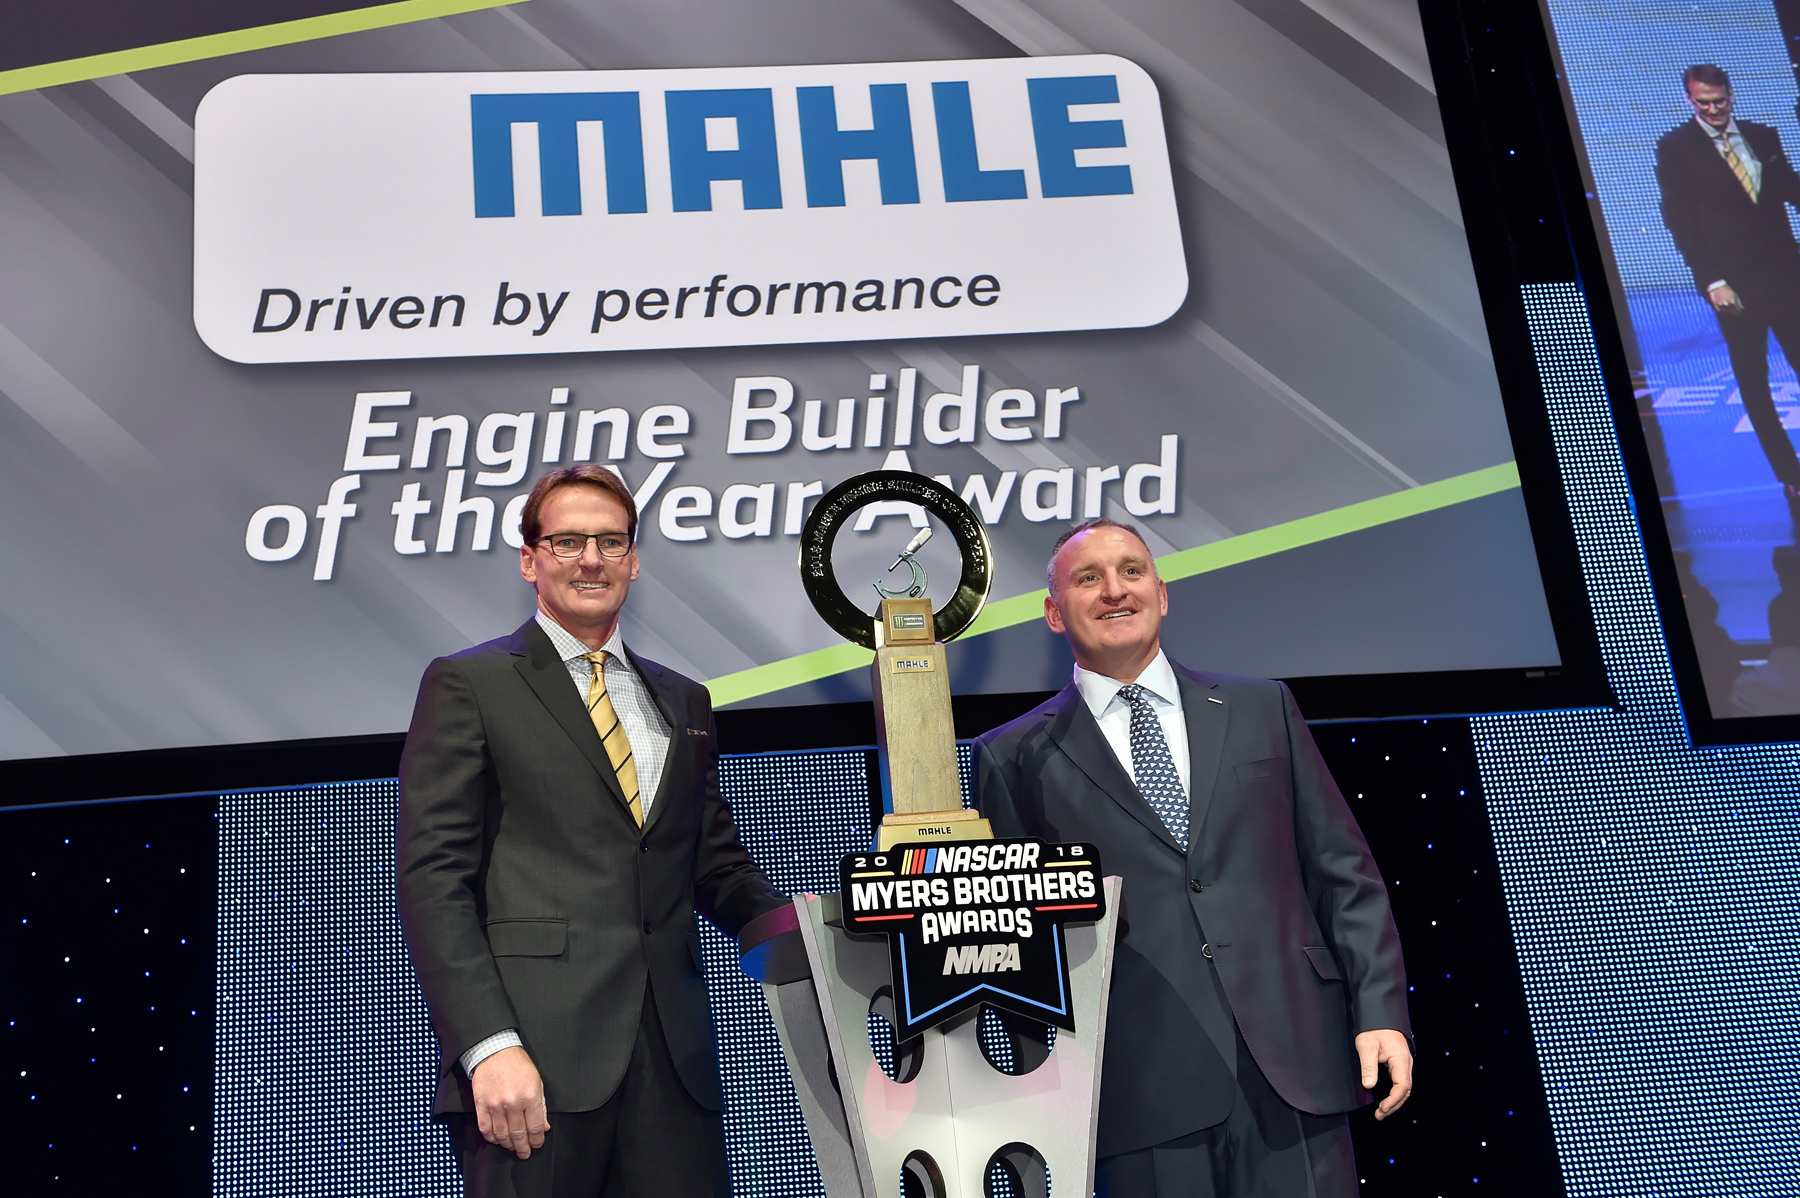 Doug Yates (left), of Roush Yates Engines accepts the MAHLE Engine Builder of the Year Award for the Monster Energy NASCAR Cup S